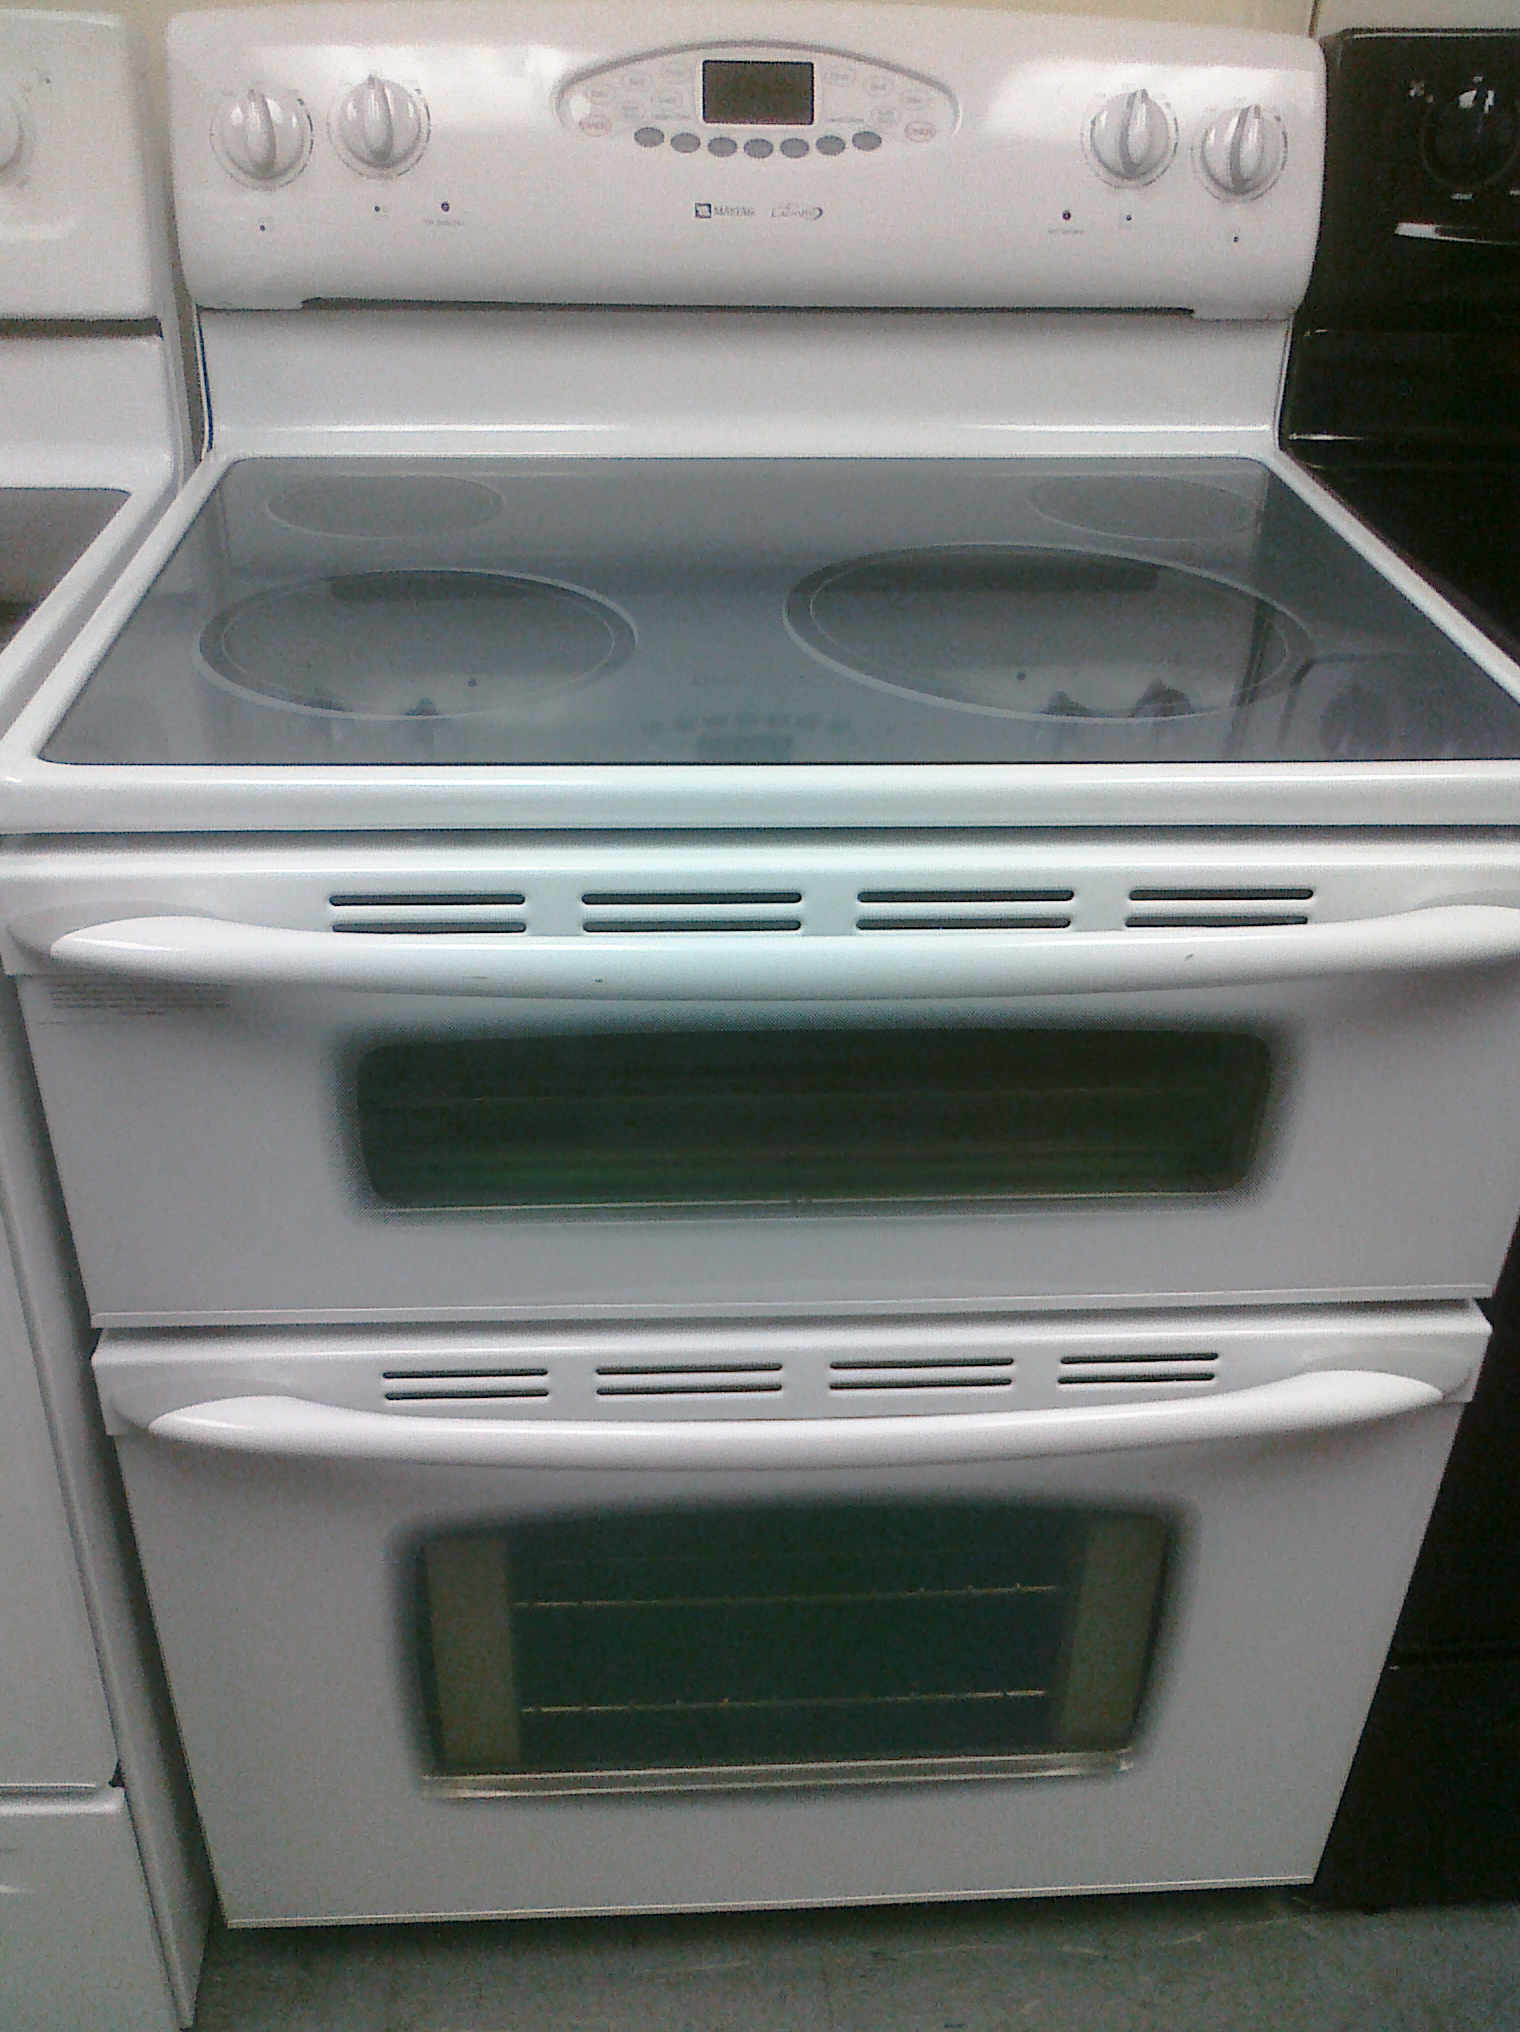 hight resolution of maytag mer6755aaw